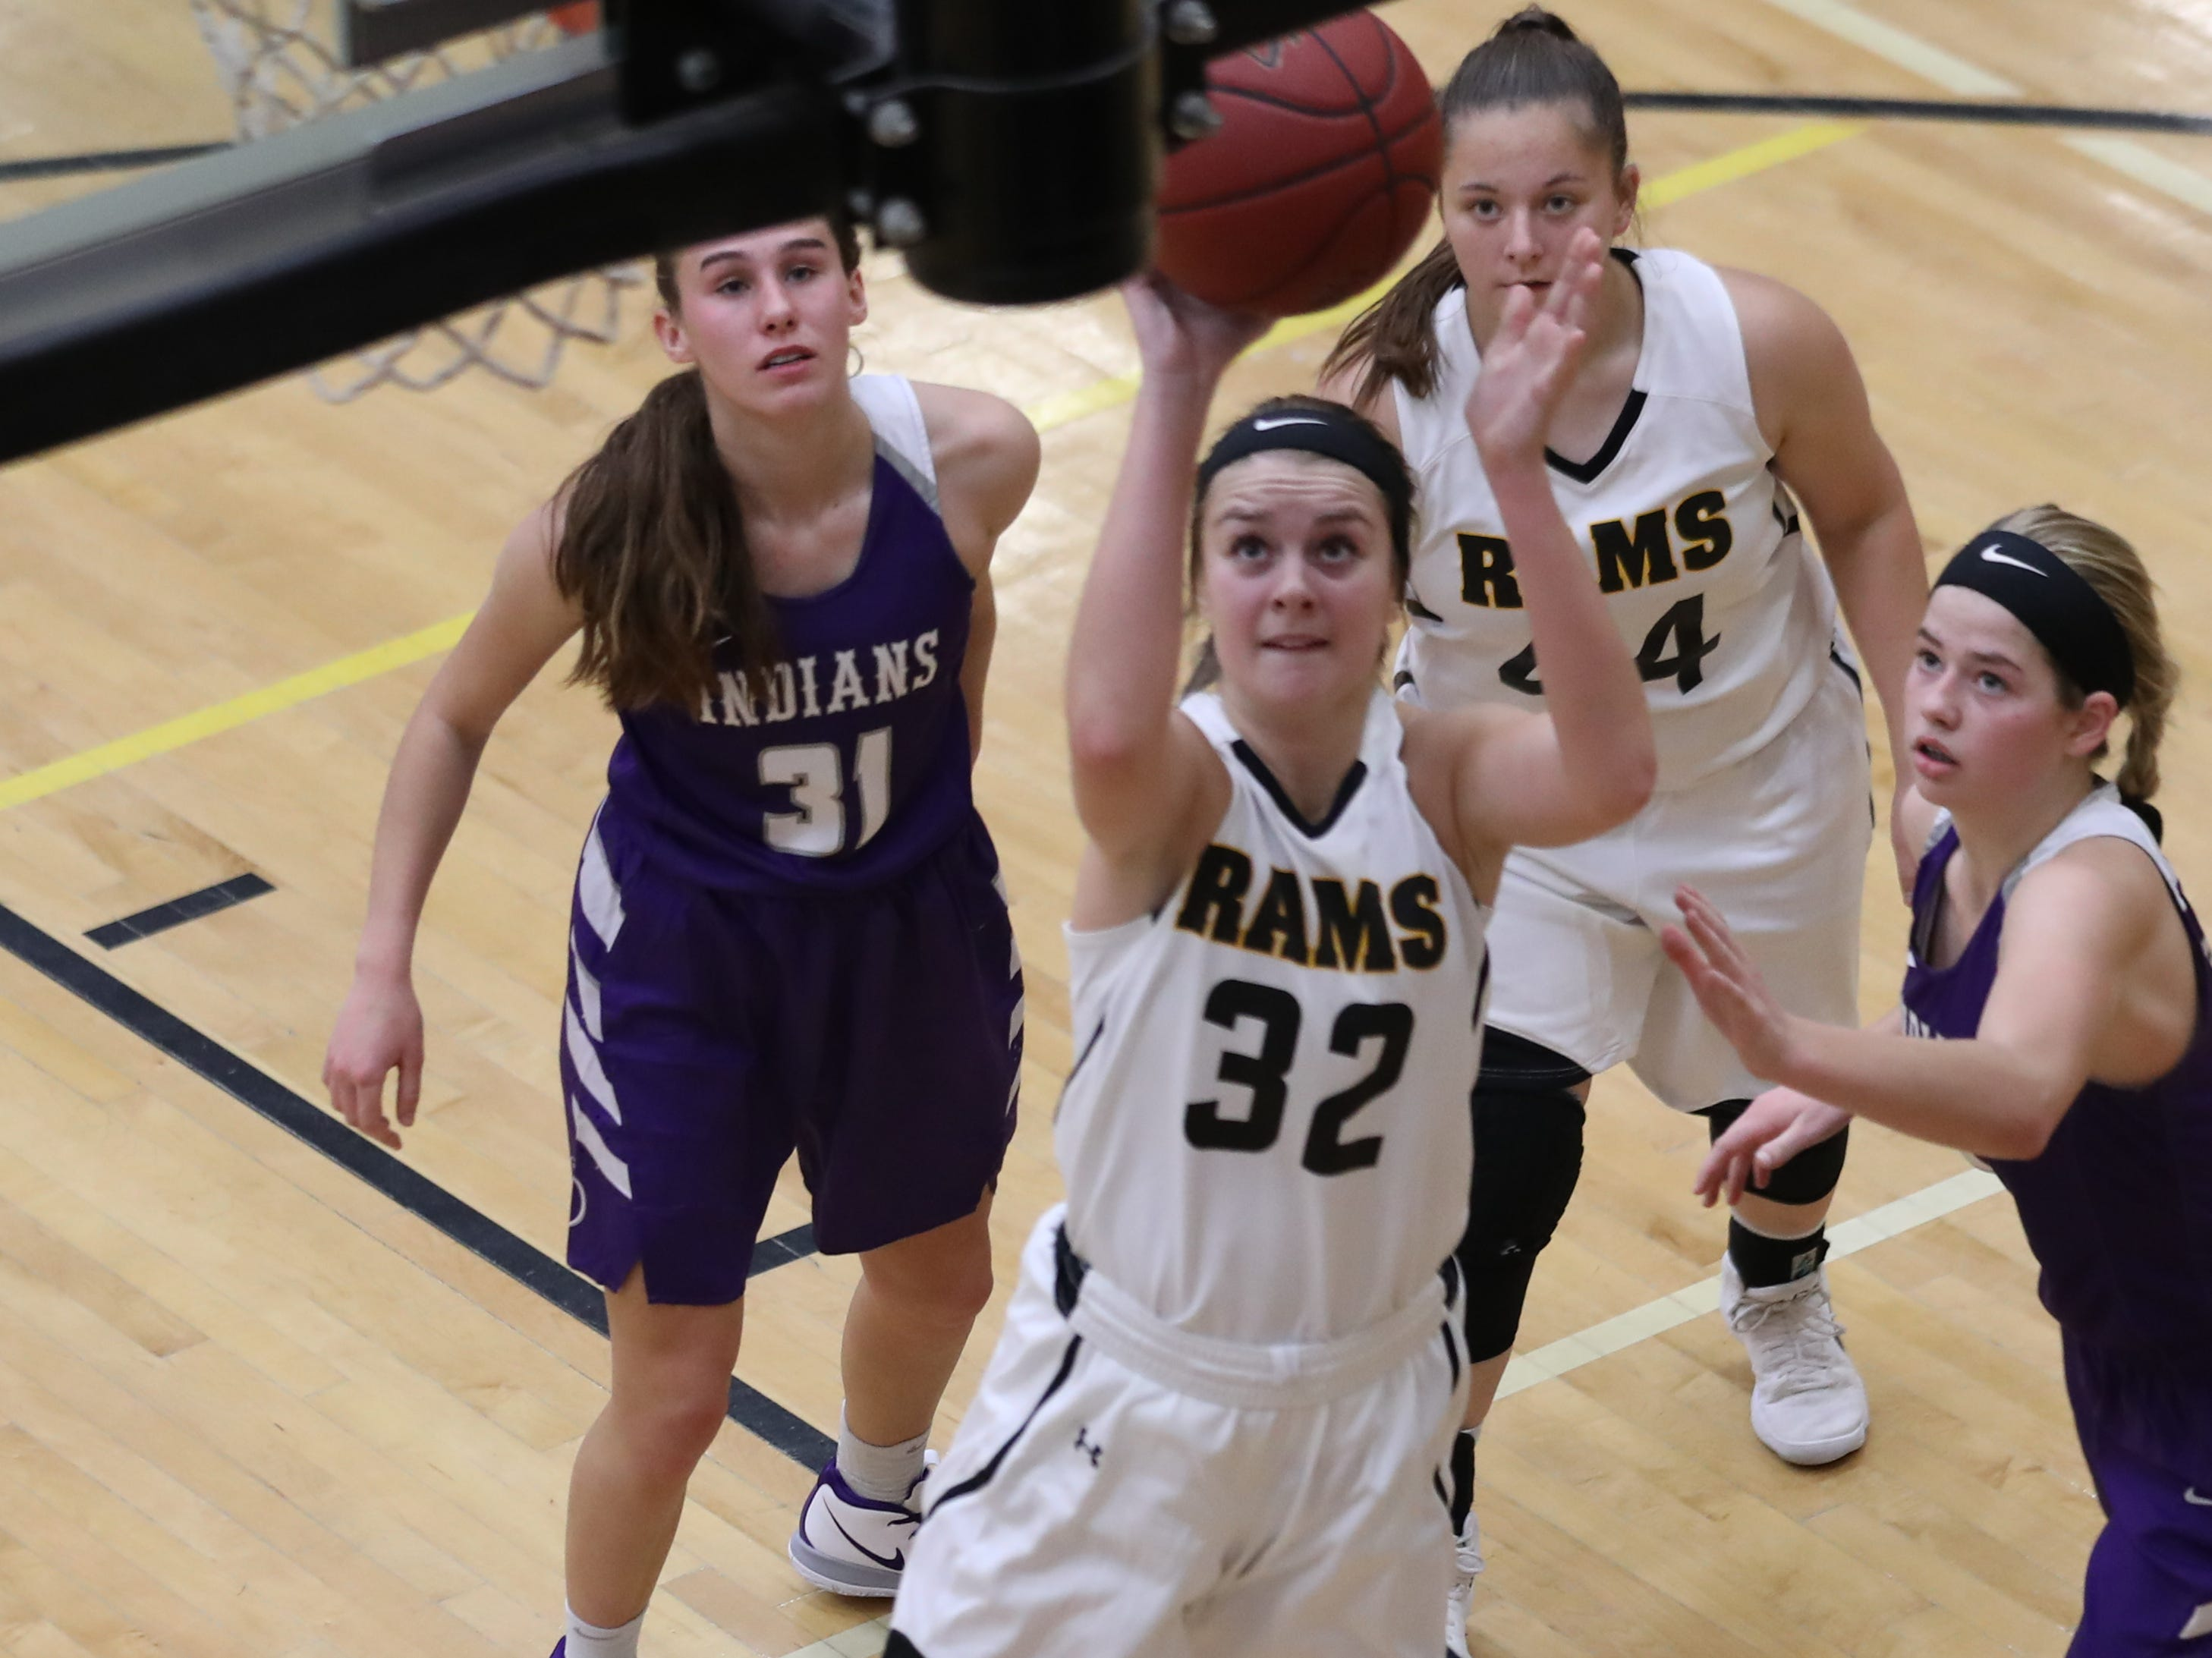 Nov 20, 2018; Pleasant Hill, IA, USA;Southeast Polk Rams Maggie McGraw (32) scores a basket against the Indianola Indians at Southeast Polk Gymnasium.